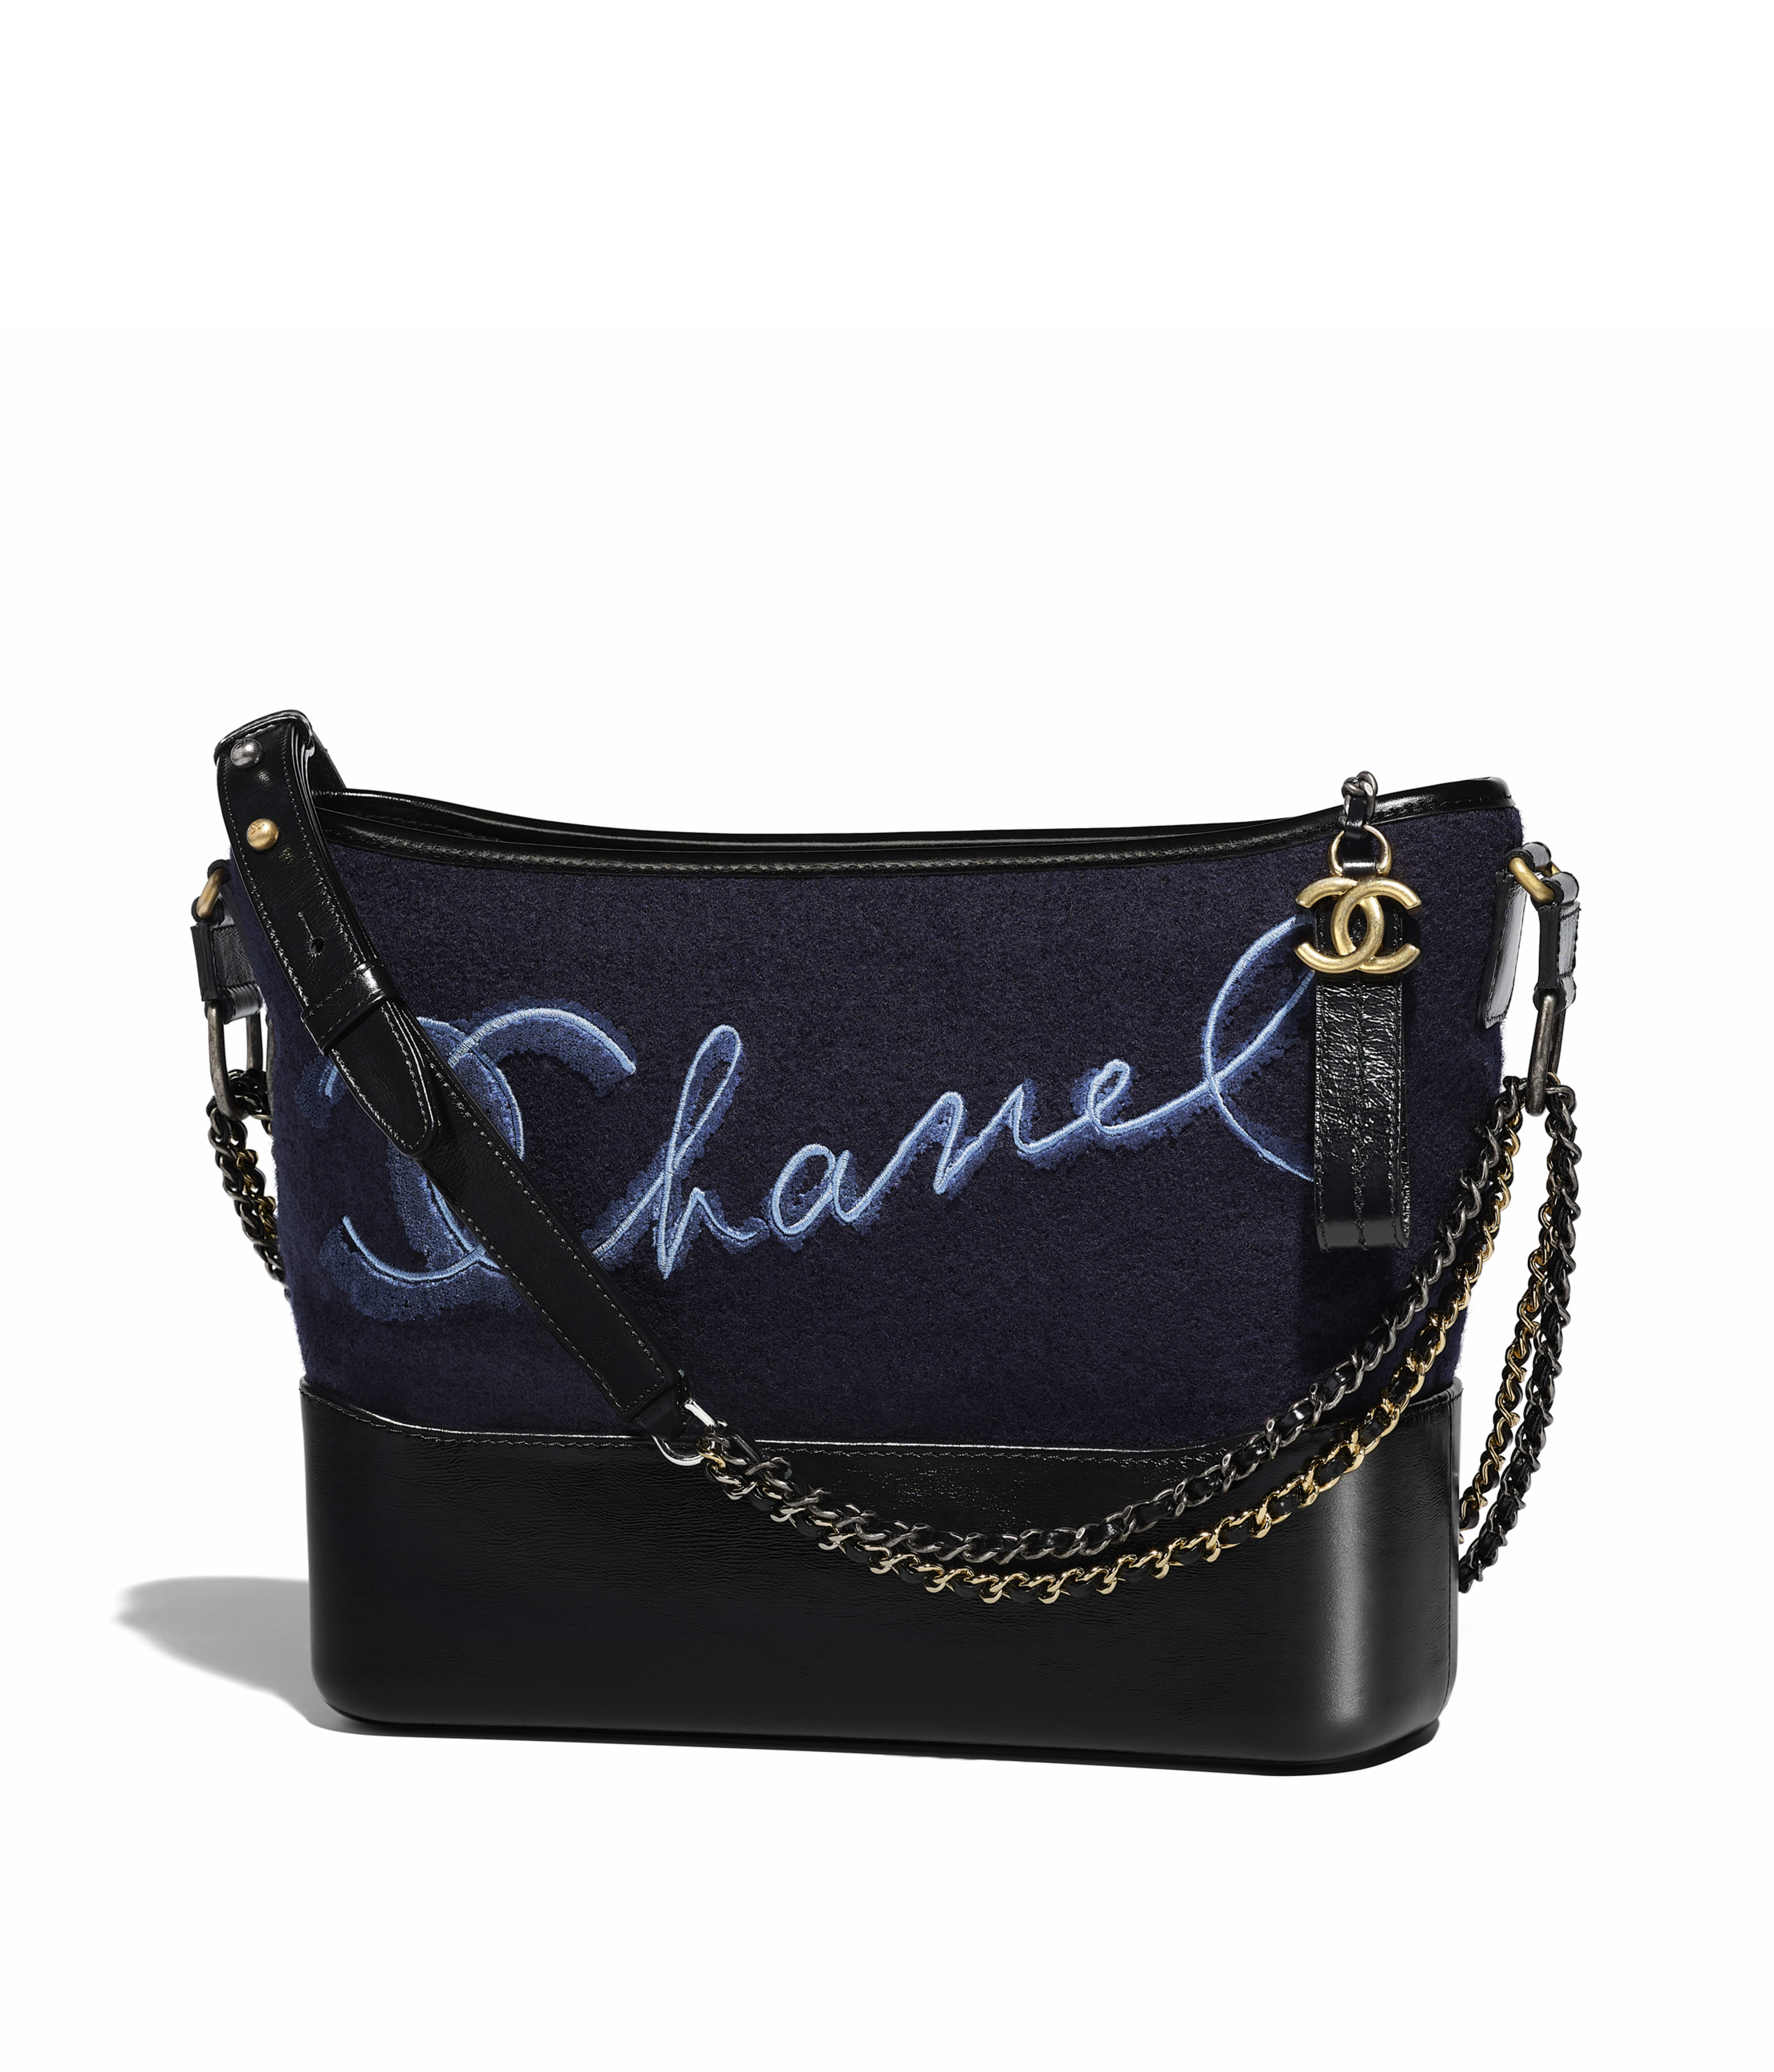 Chanel S Gabrielle Hobo Bag Embroidered Wool Calfskin Silver Tone Gold Metal Navy Blue Ref A93824y83758c1722